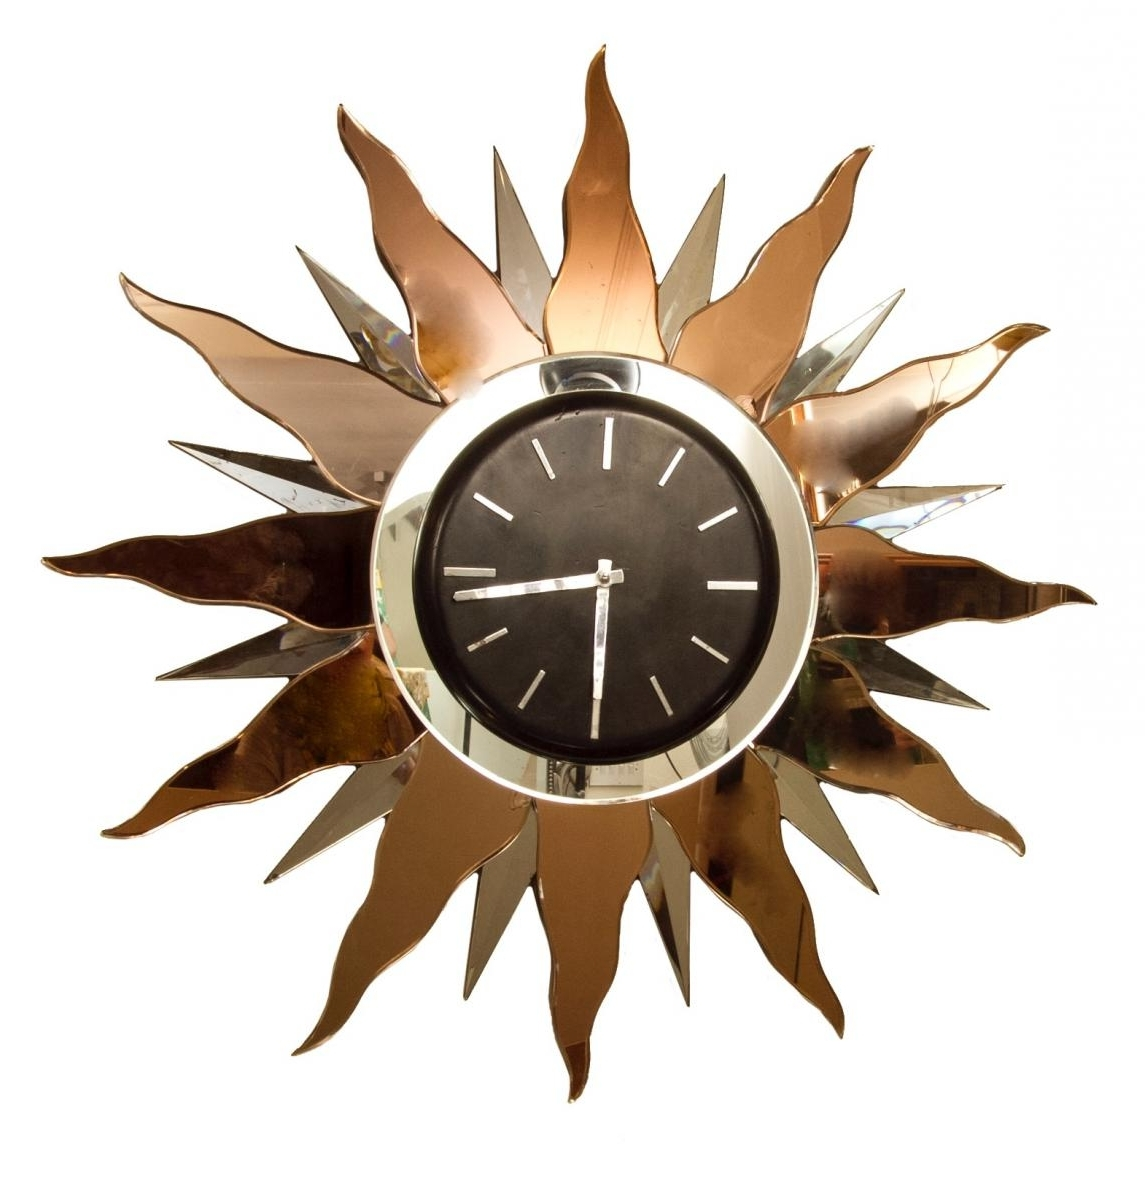 Showing Gallery of Large Art Deco Wall Clocks View 9 of 15 Photos